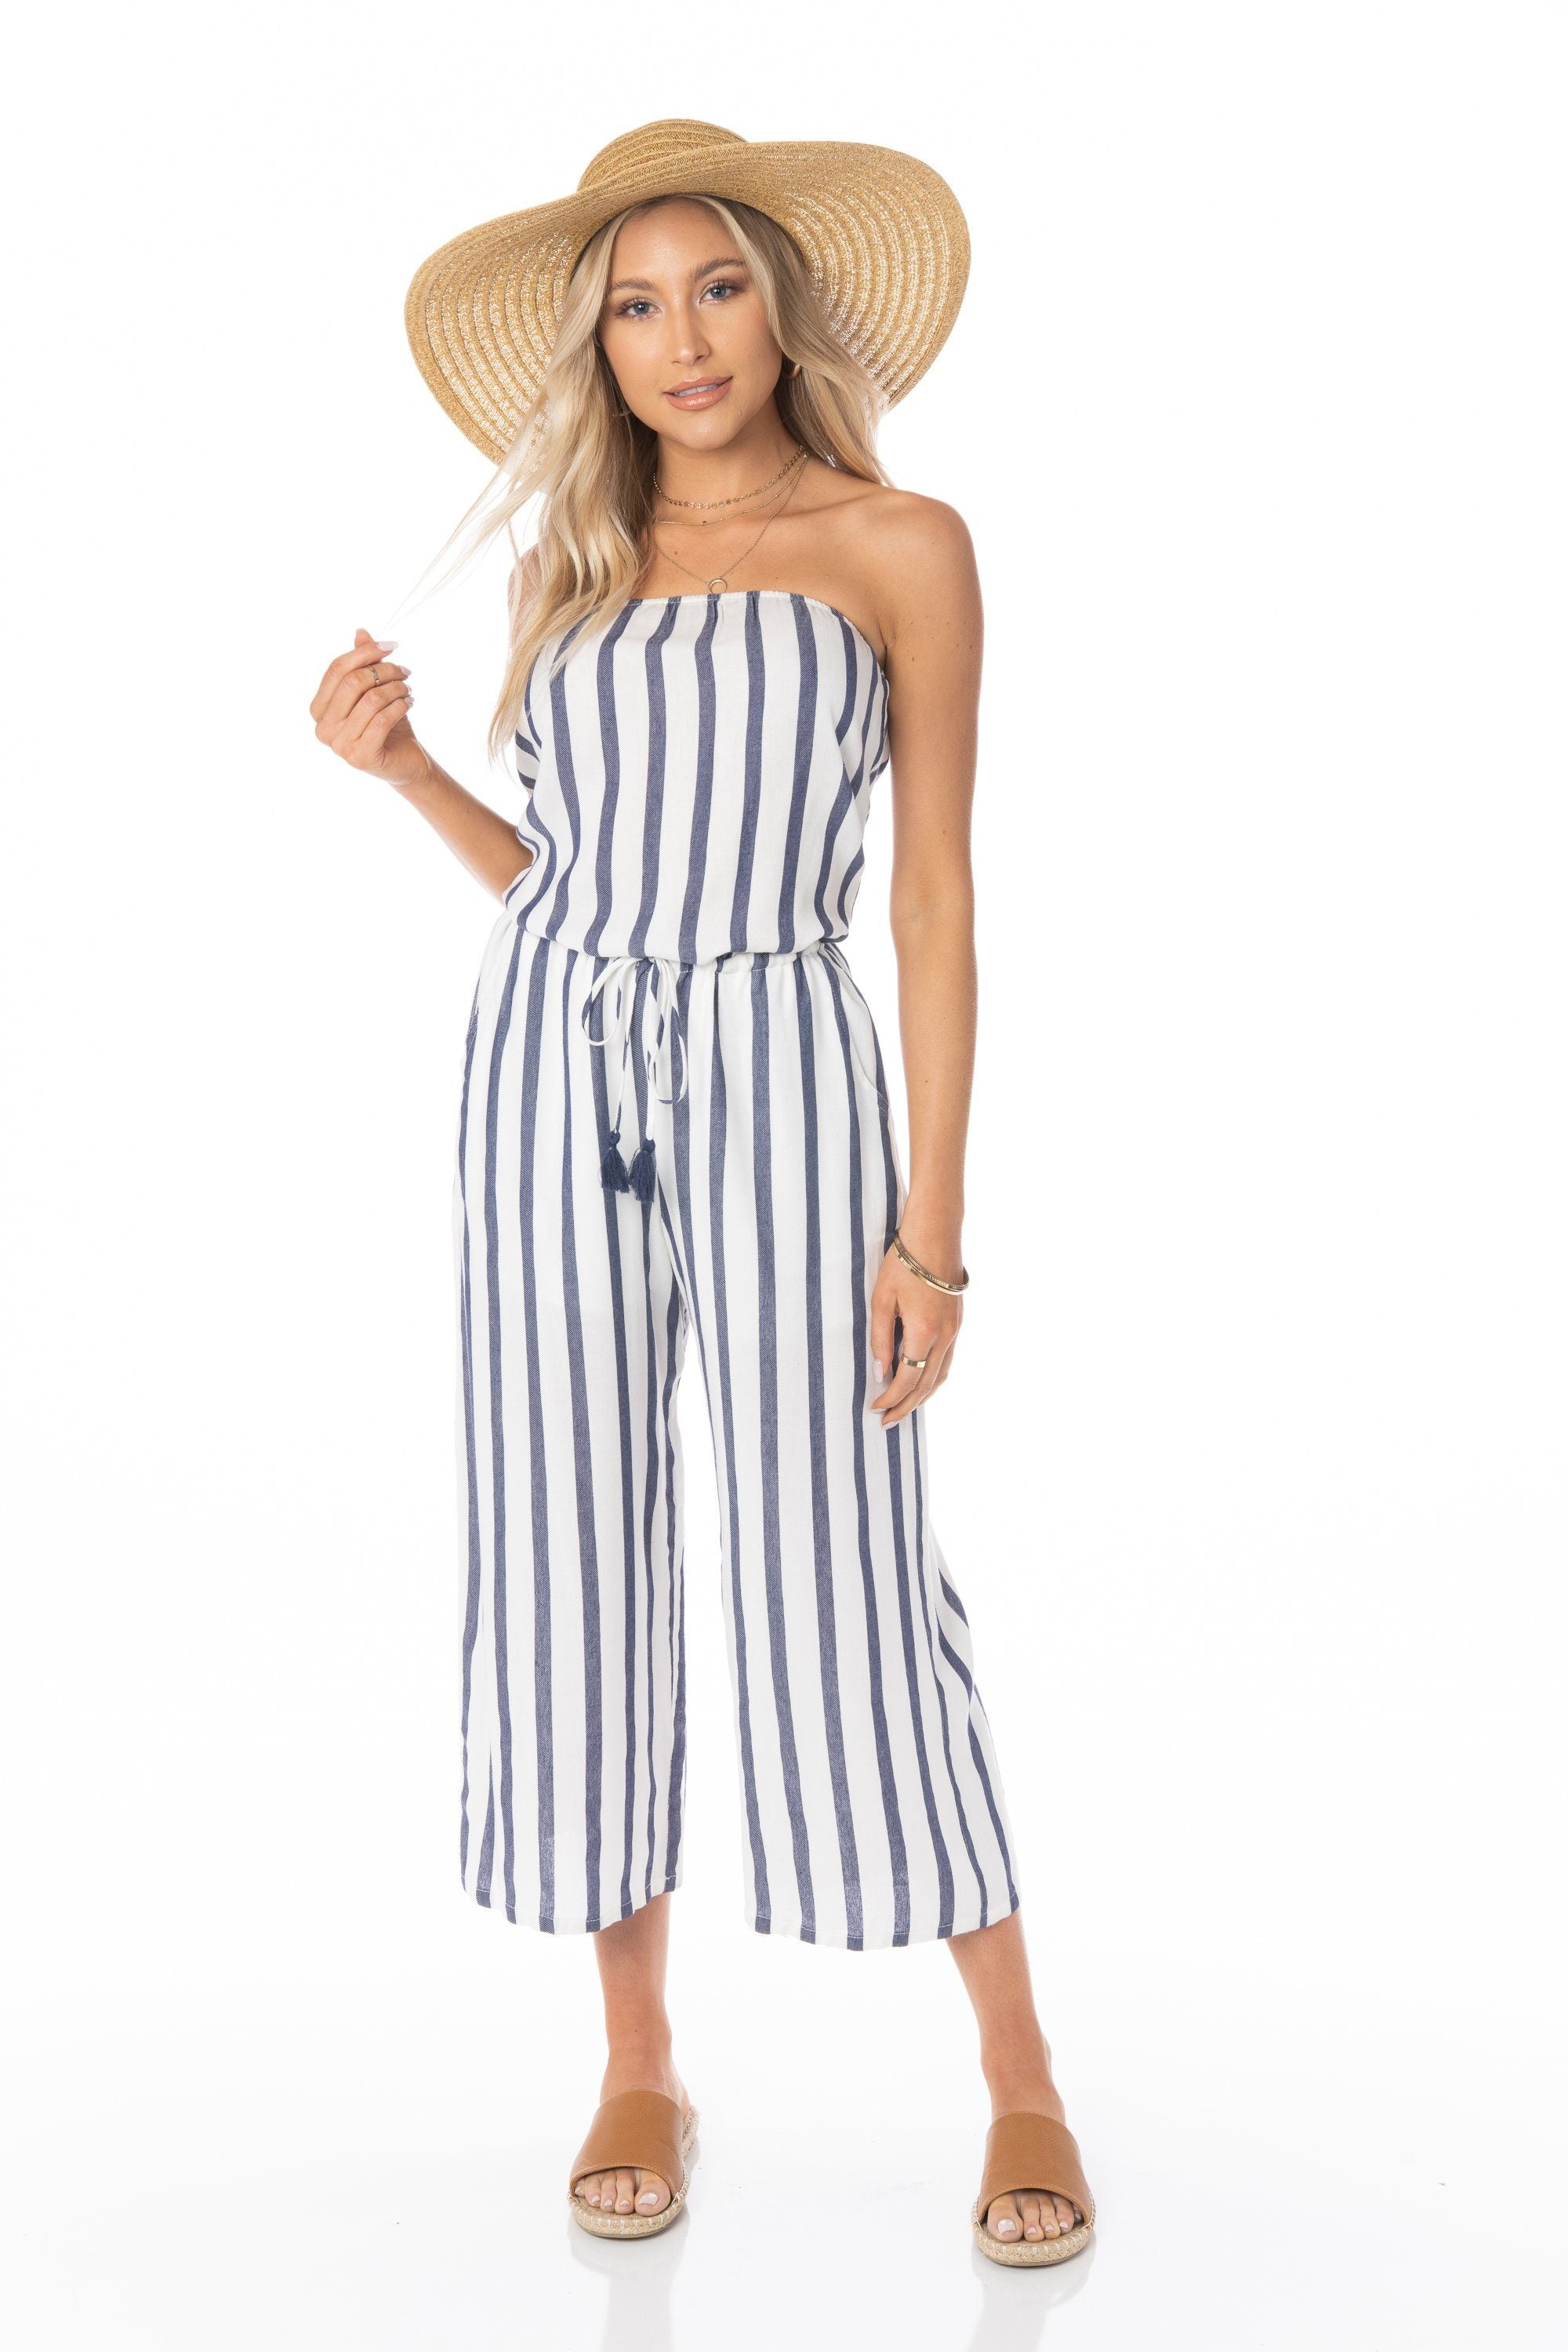 Athena Strapless White Blue Jumpsuit Rompers & Jumpers HYPEACH BOUTIQUE